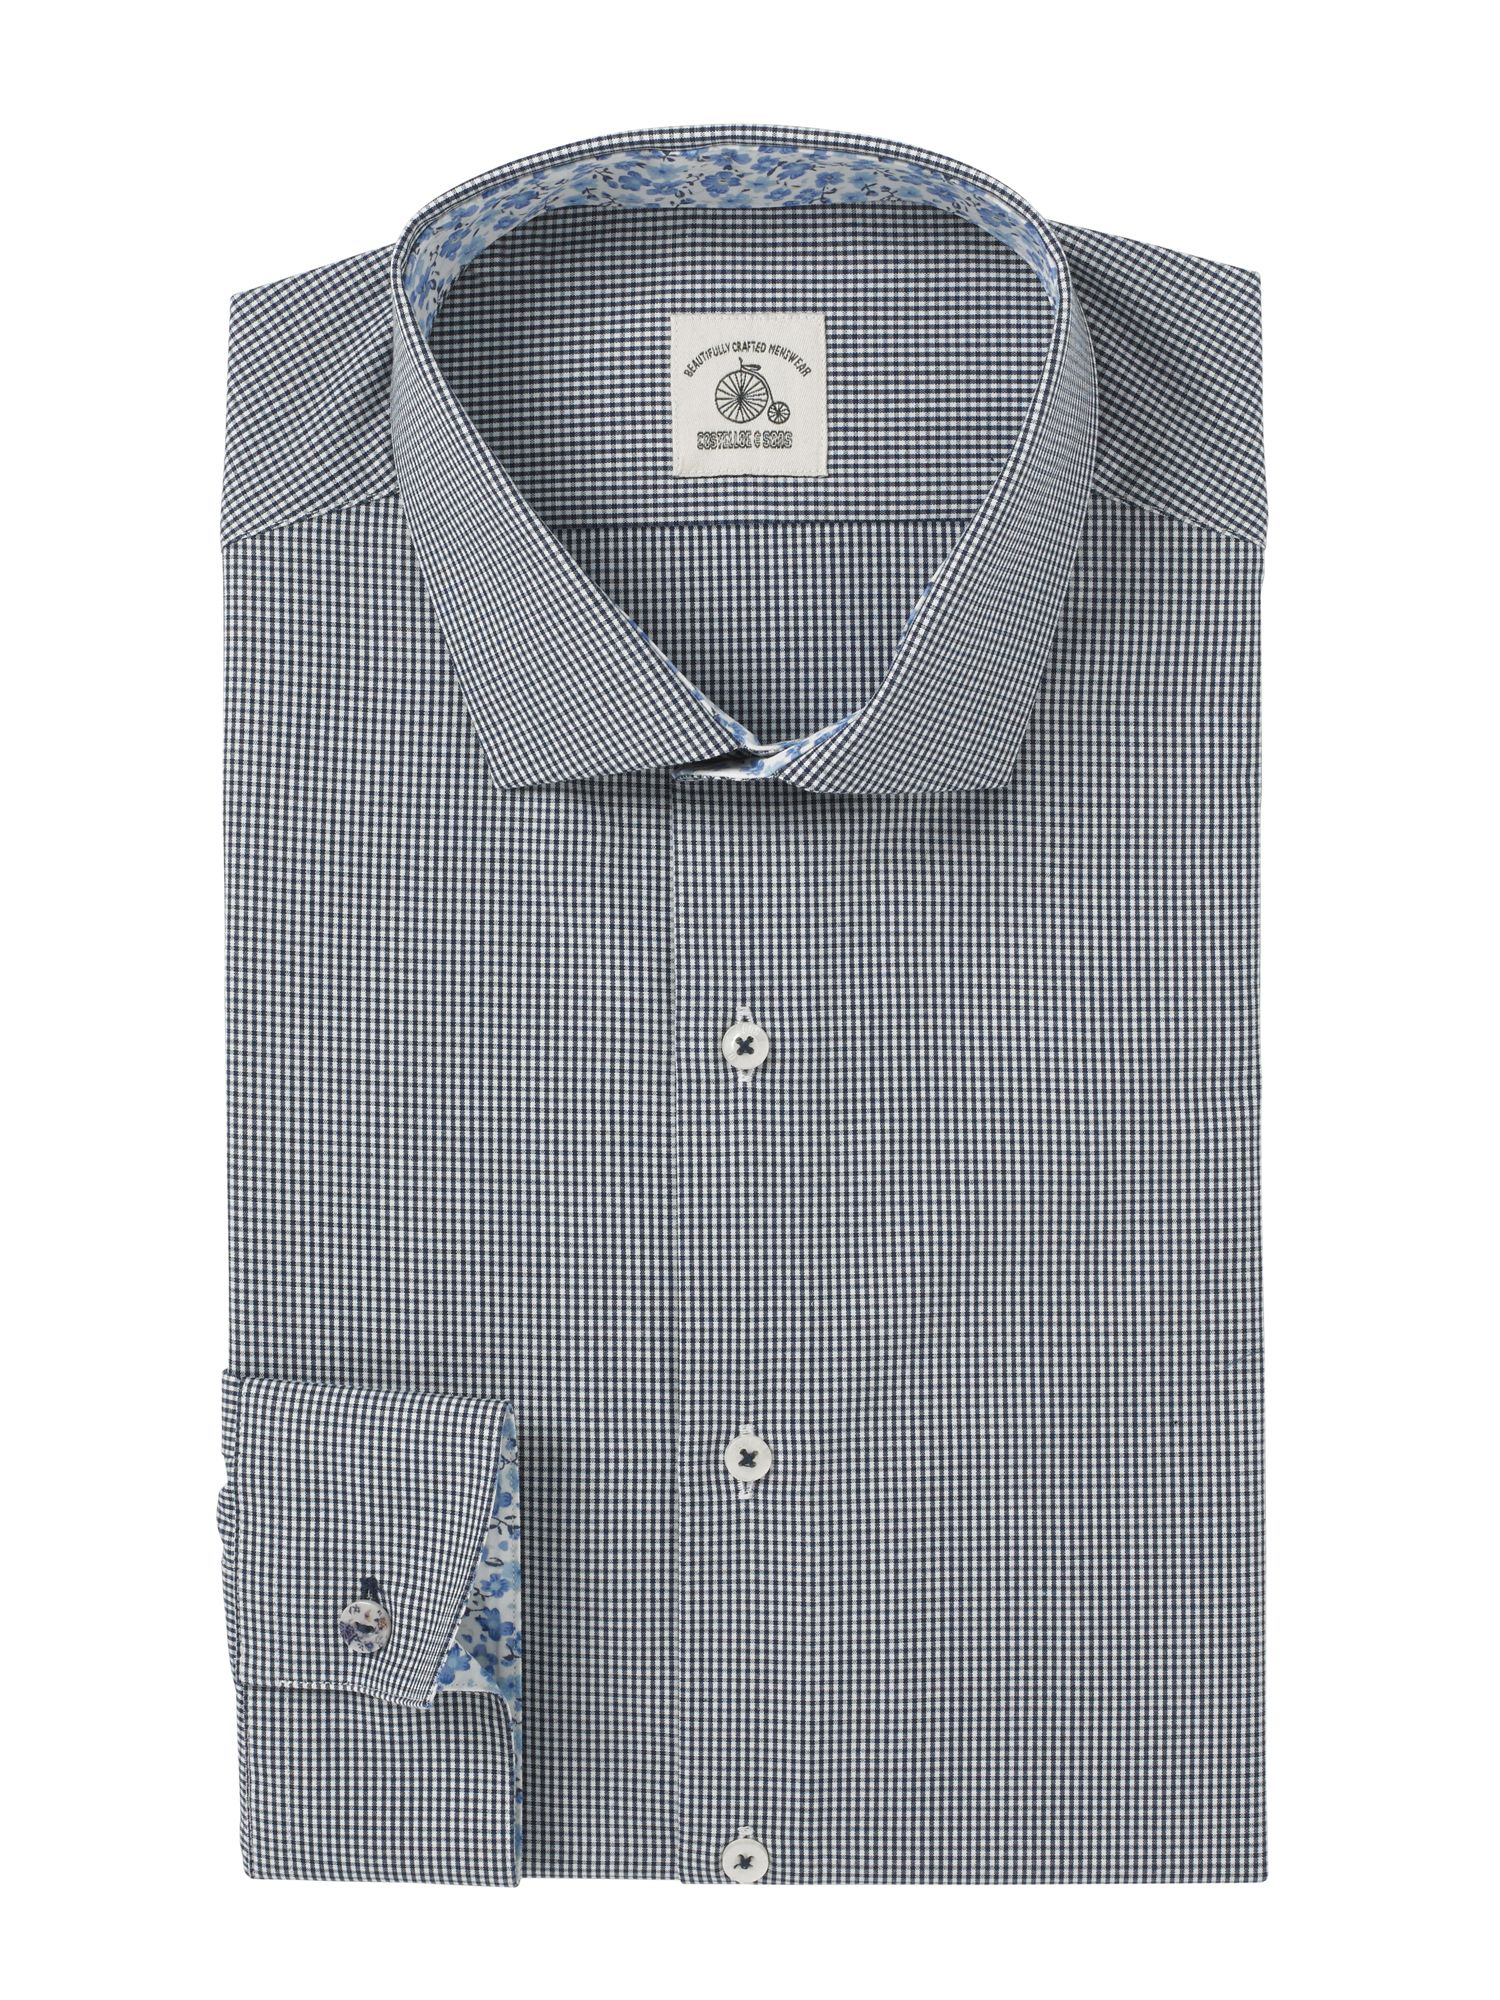 Small gingham check long sleeve shirt